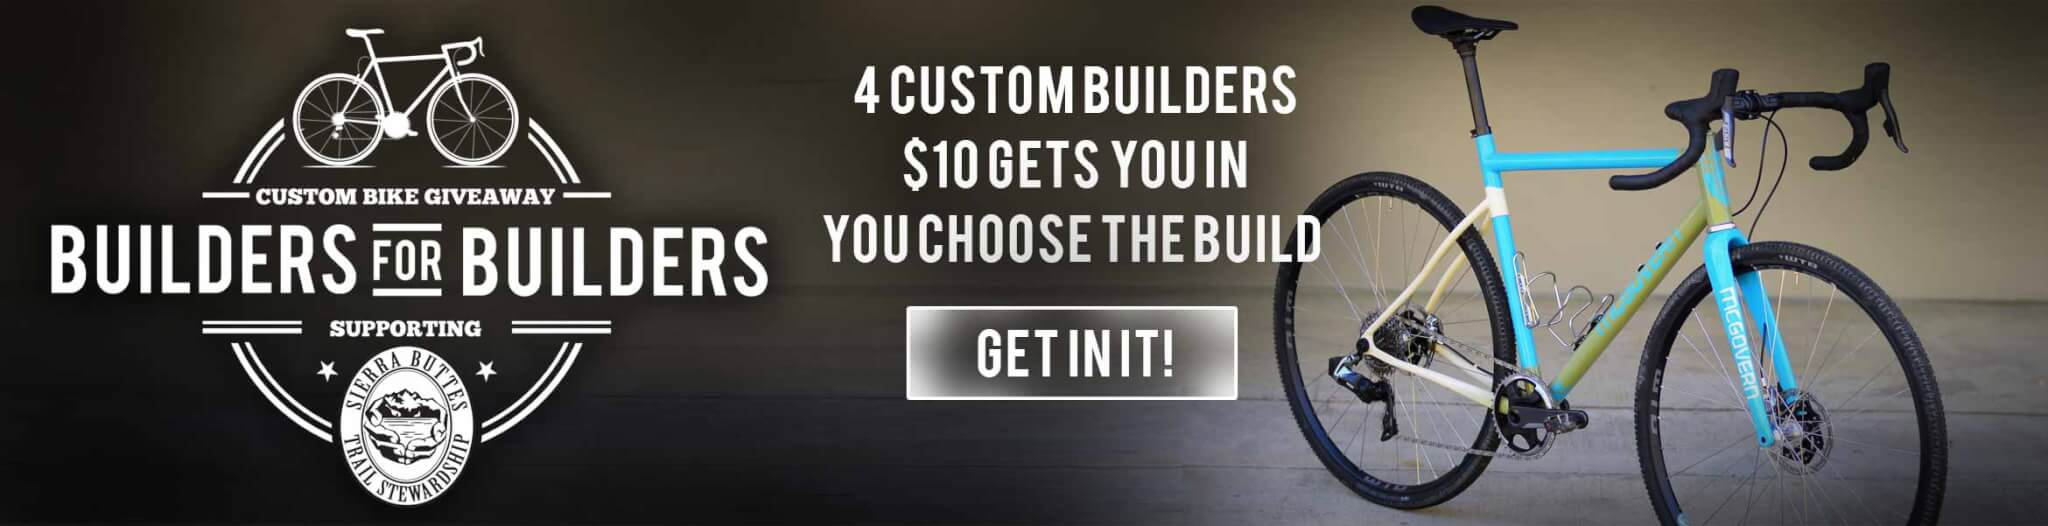 Builders for Builders enter here